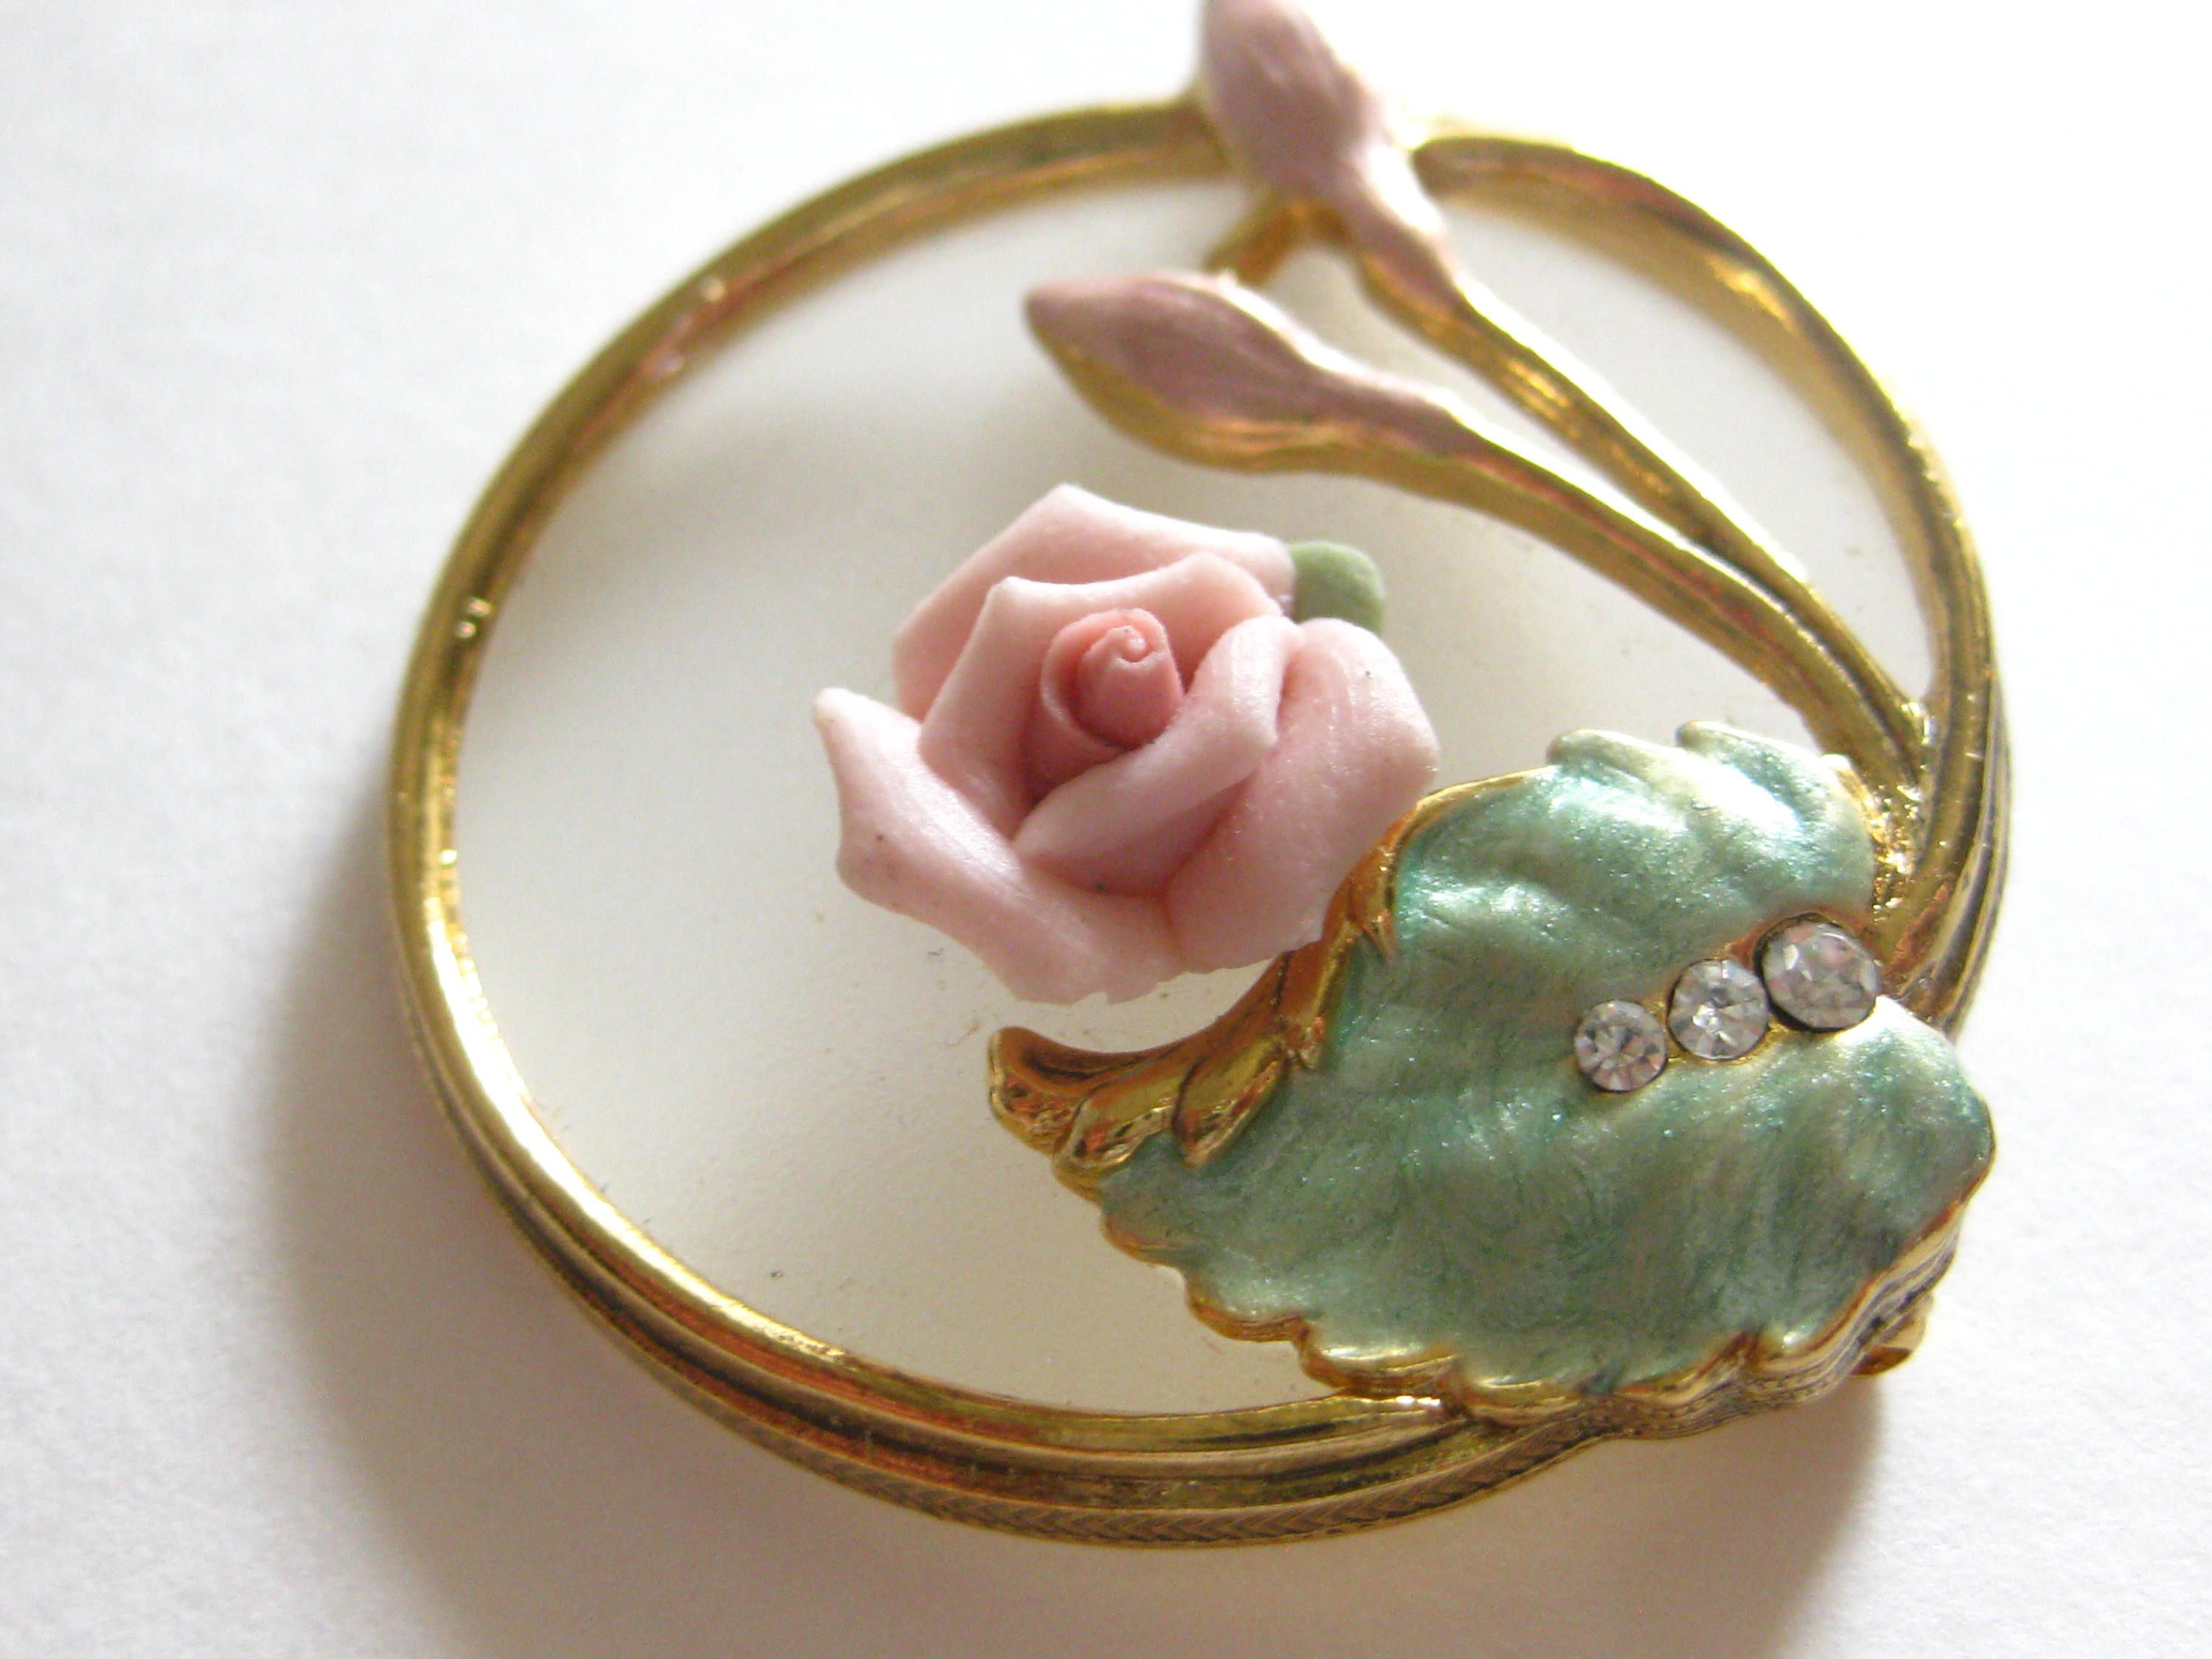 30s-40s Vintage retro engraved pin with rose